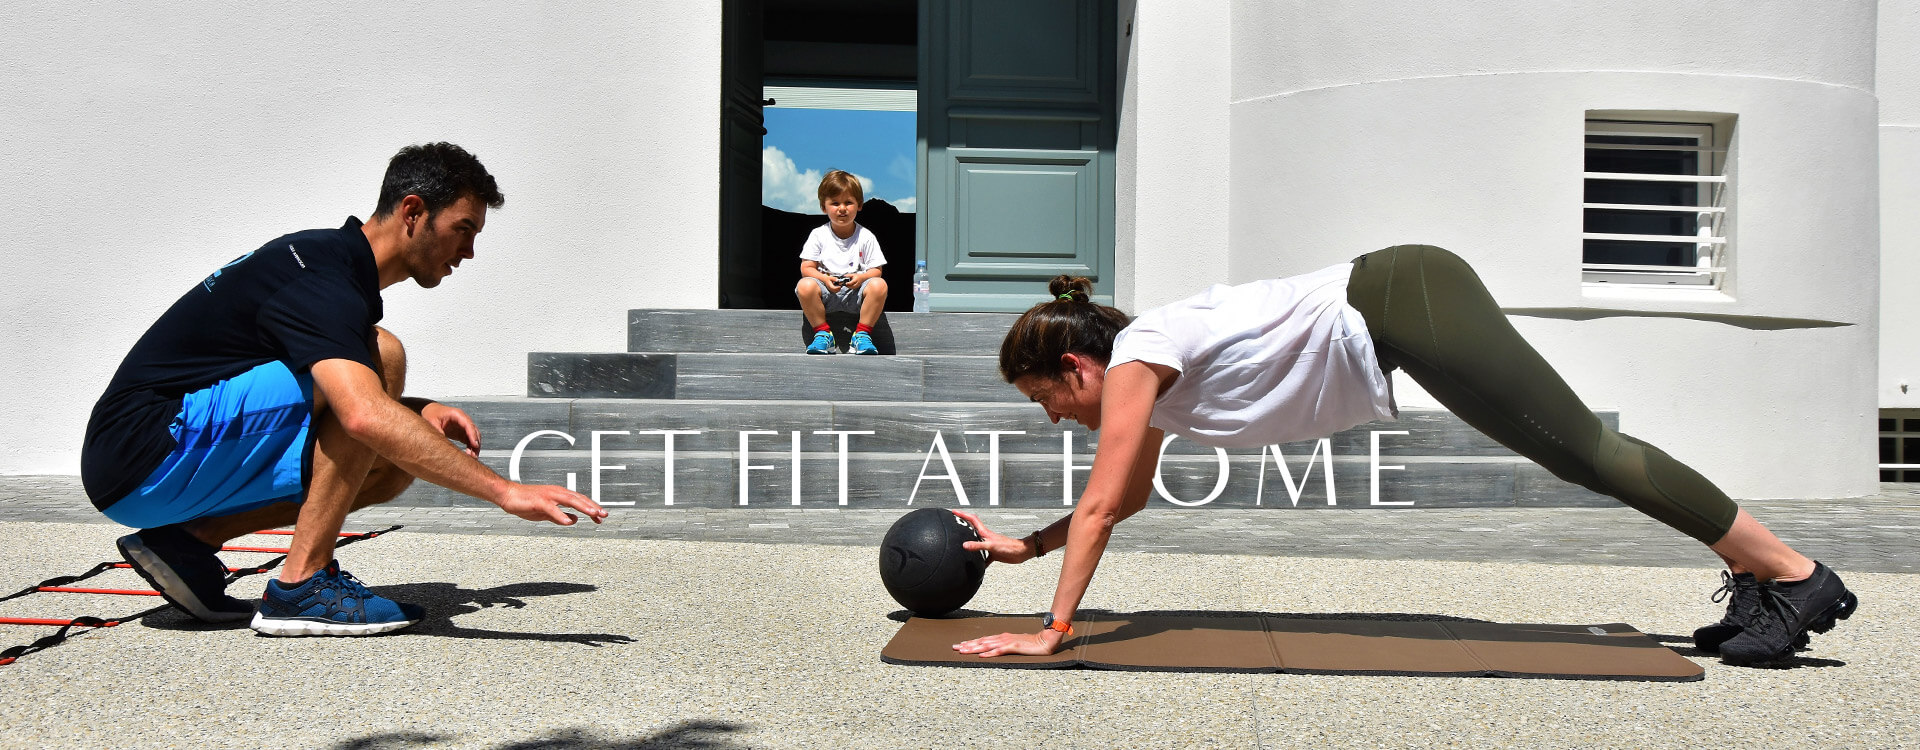 Get fit at home